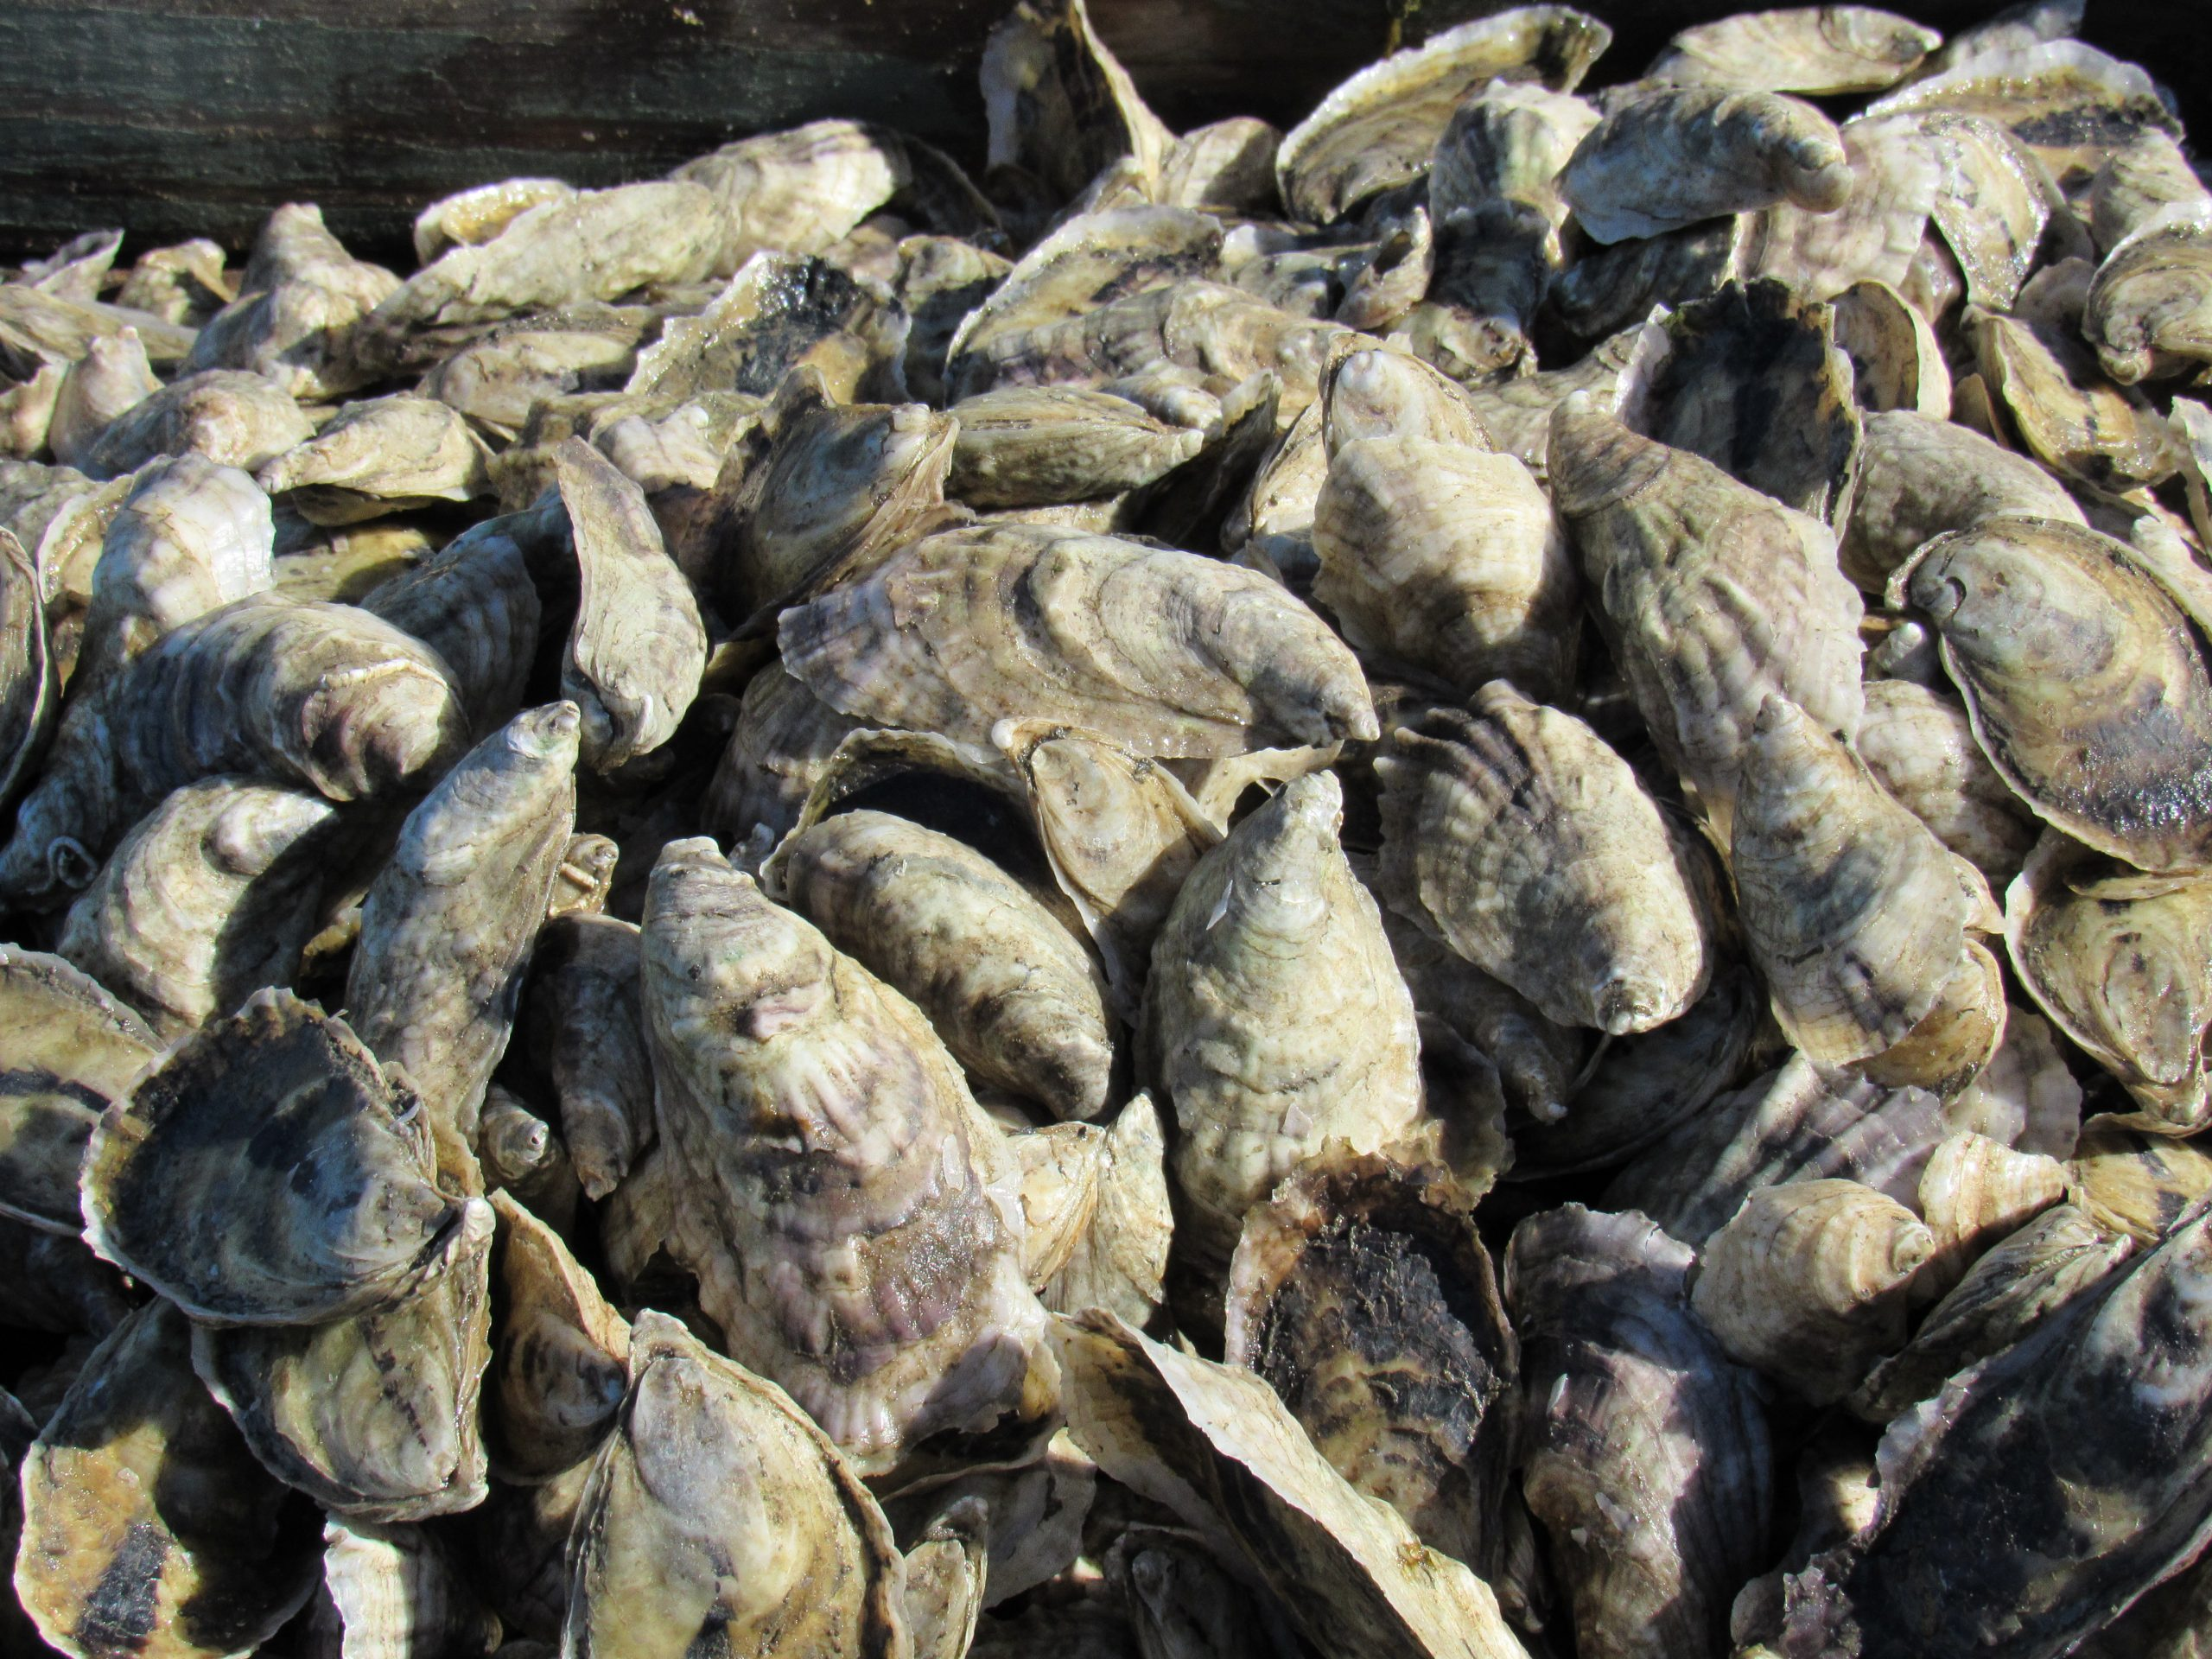 Sustainable oyster farming